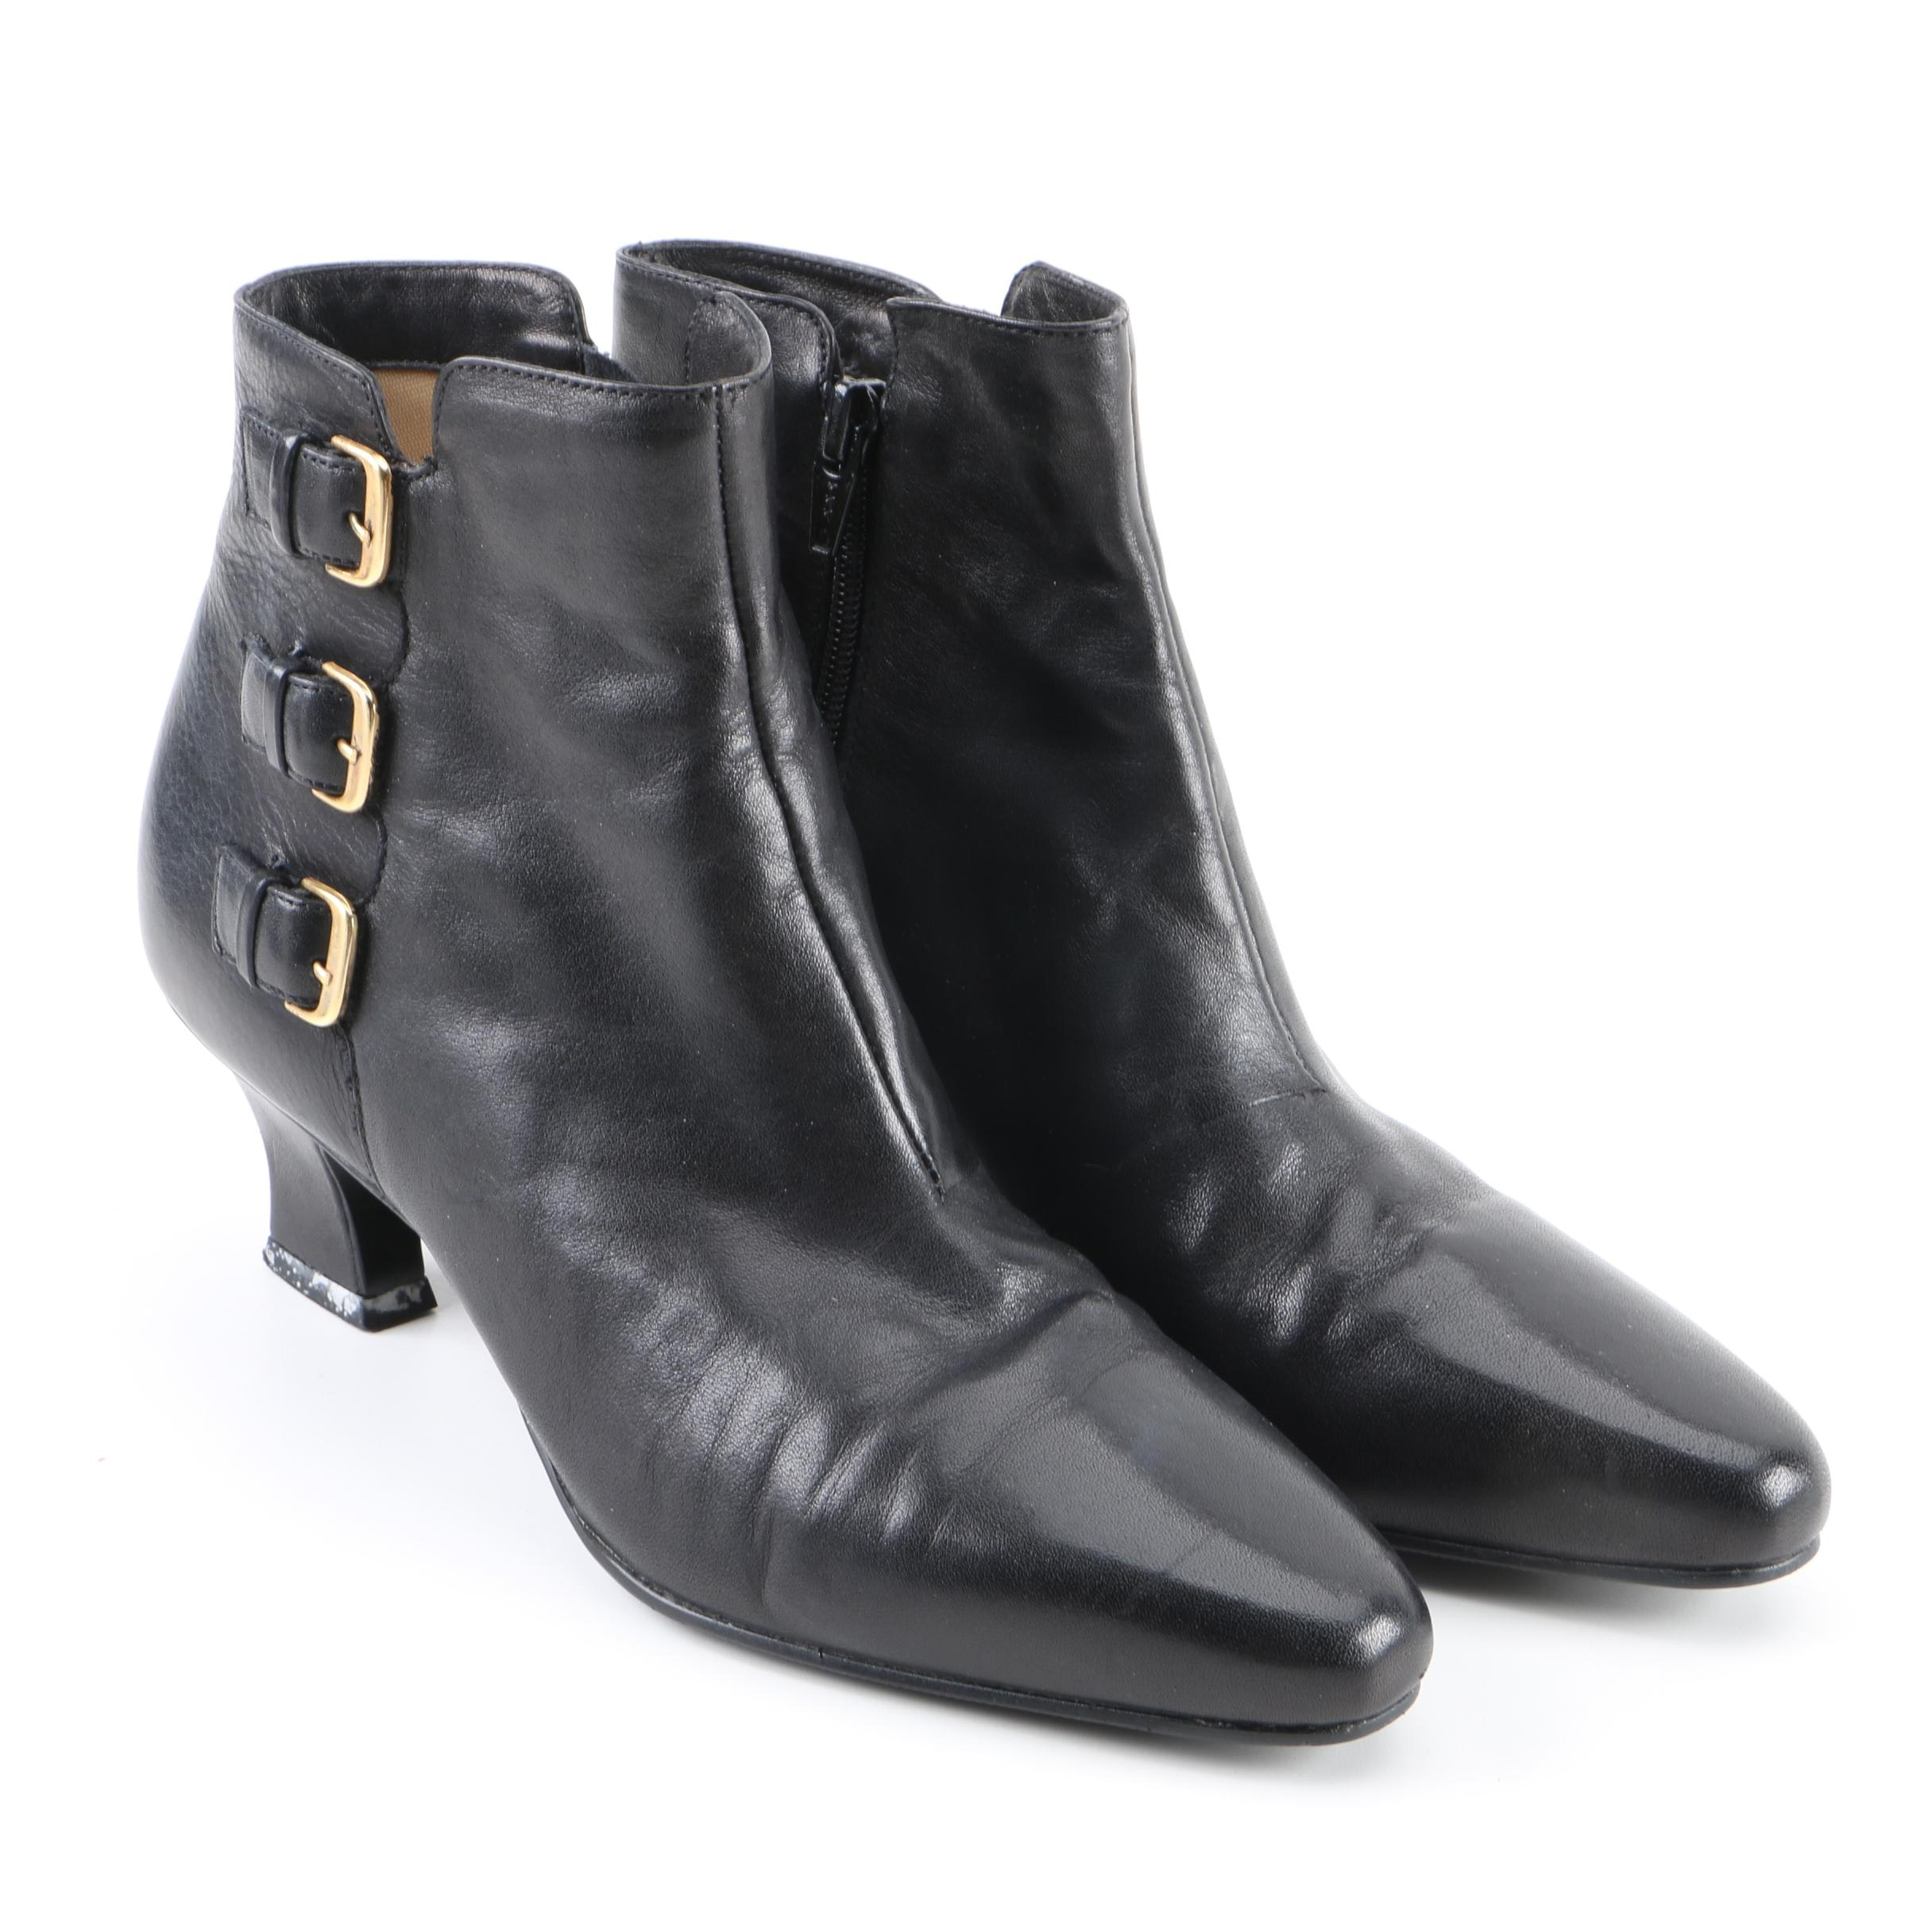 Enzo Angiolini Black Leather Booties with Gold Tone Buckle Accents